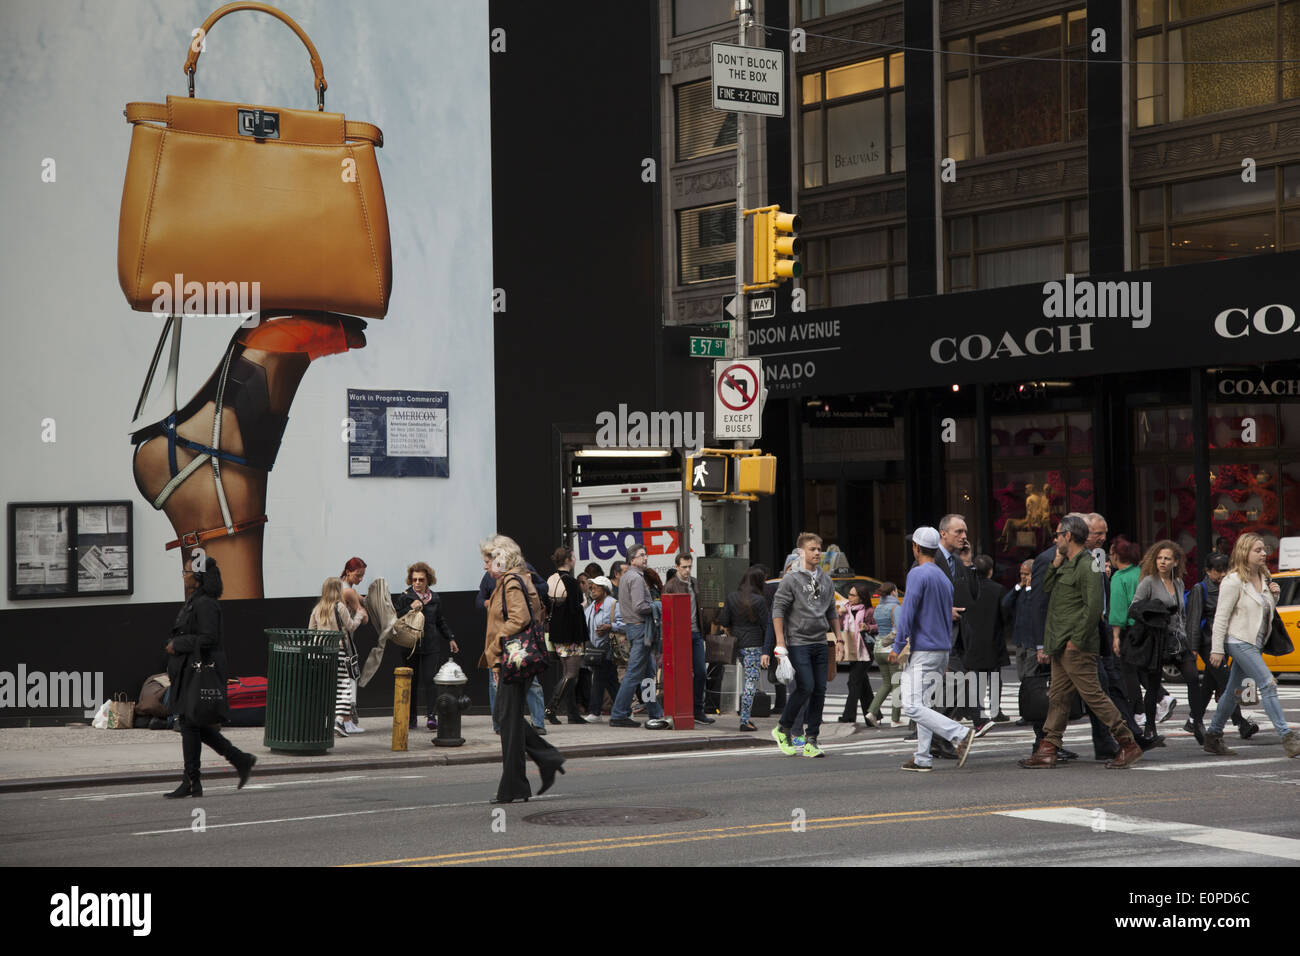 'High end', 'bigger than life' advertising for the wealthy at Madison Ave. & 57th St. in Manhattan, NYC. - Stock Image